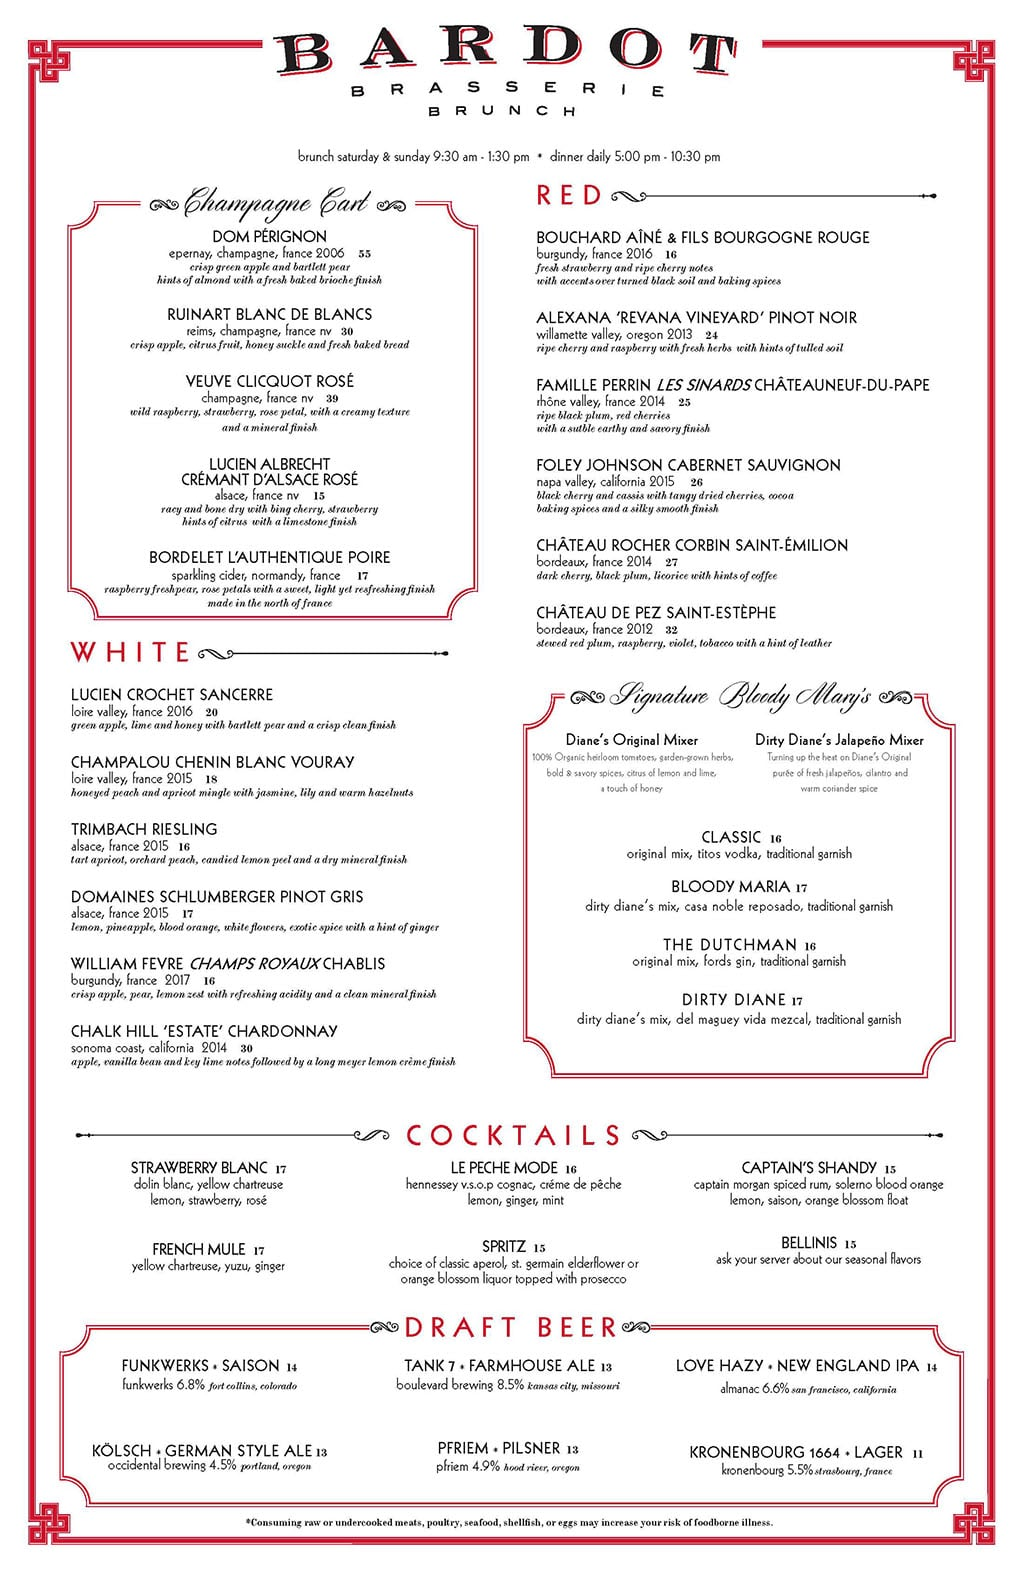 Bardot Brasserie brunch menu - wine, beer, cocktails